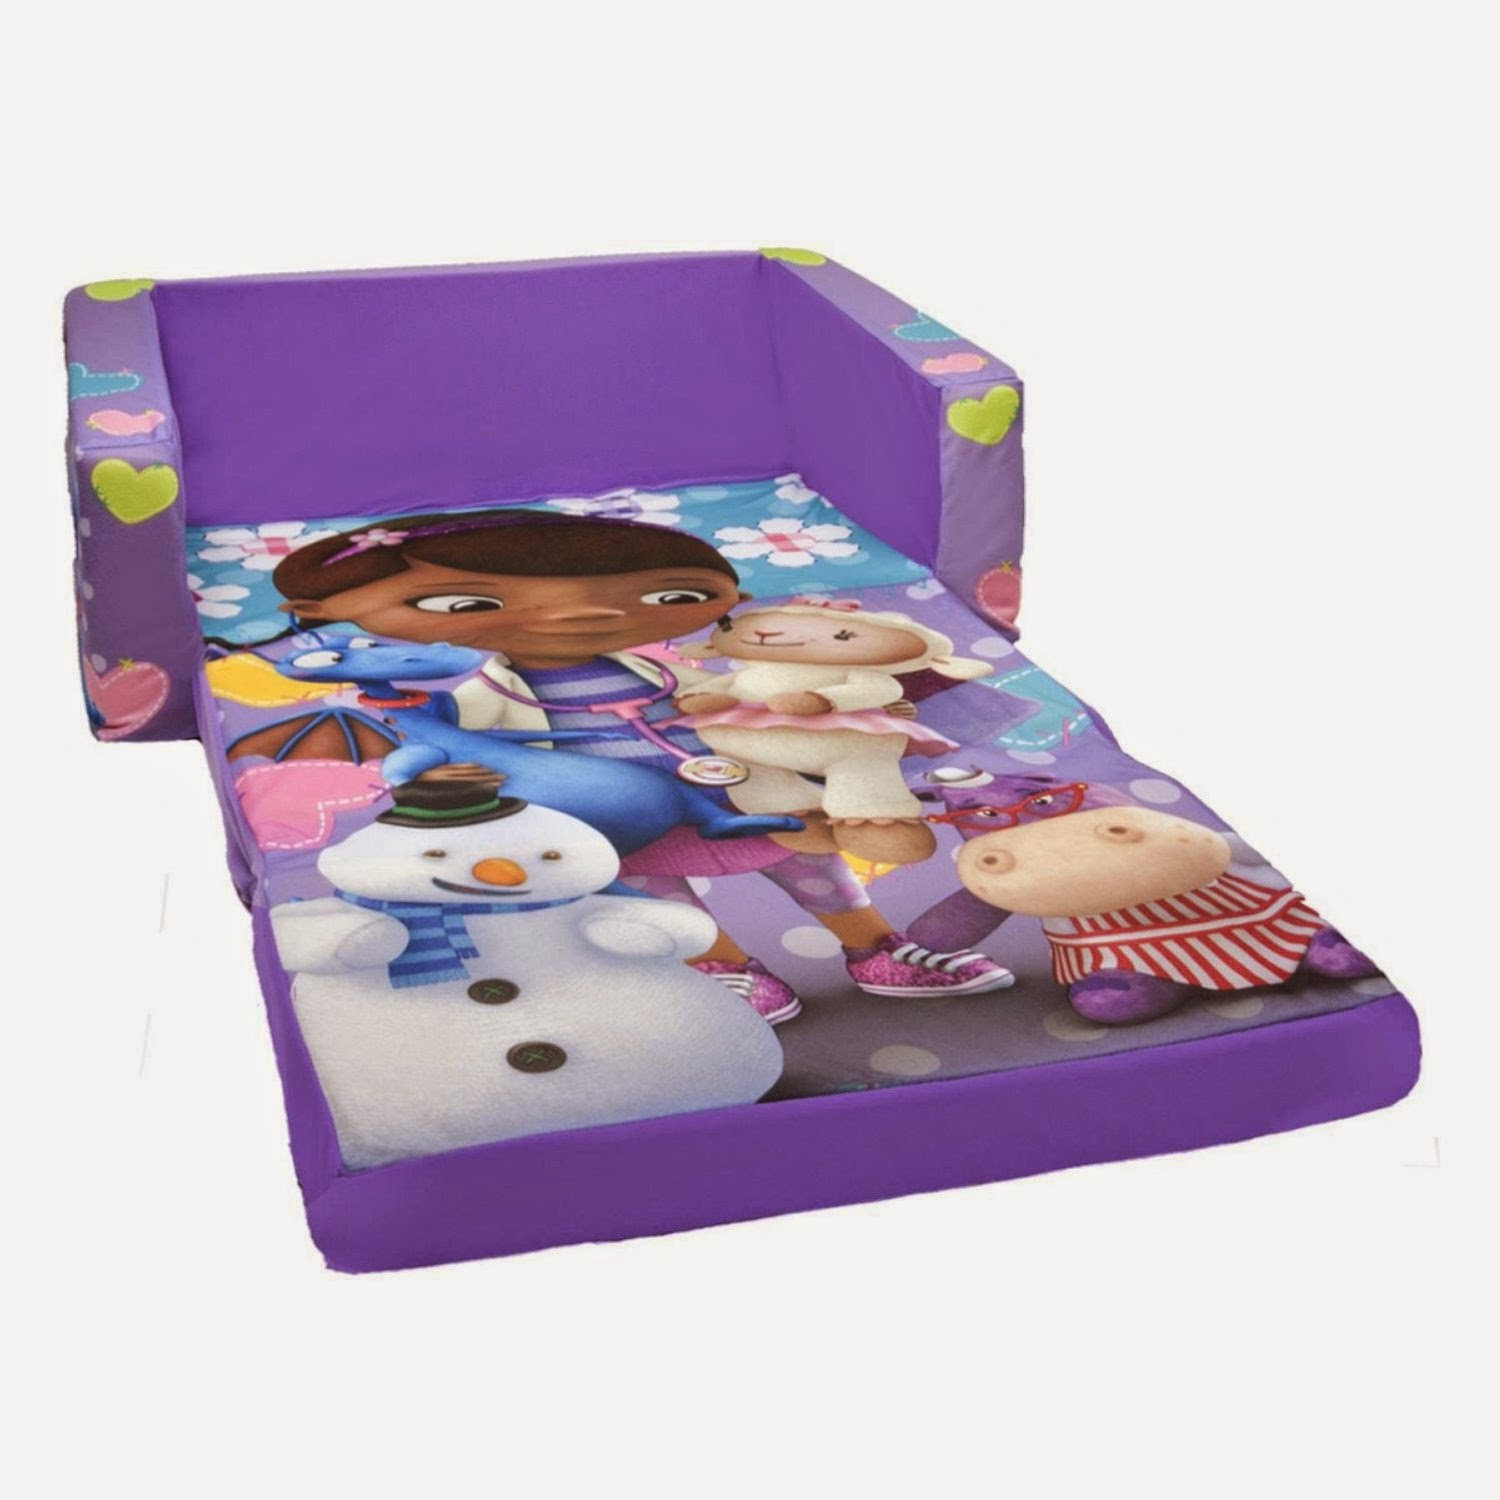 Sofa Bed For Child Klippan Cover Singapore Kids Couch